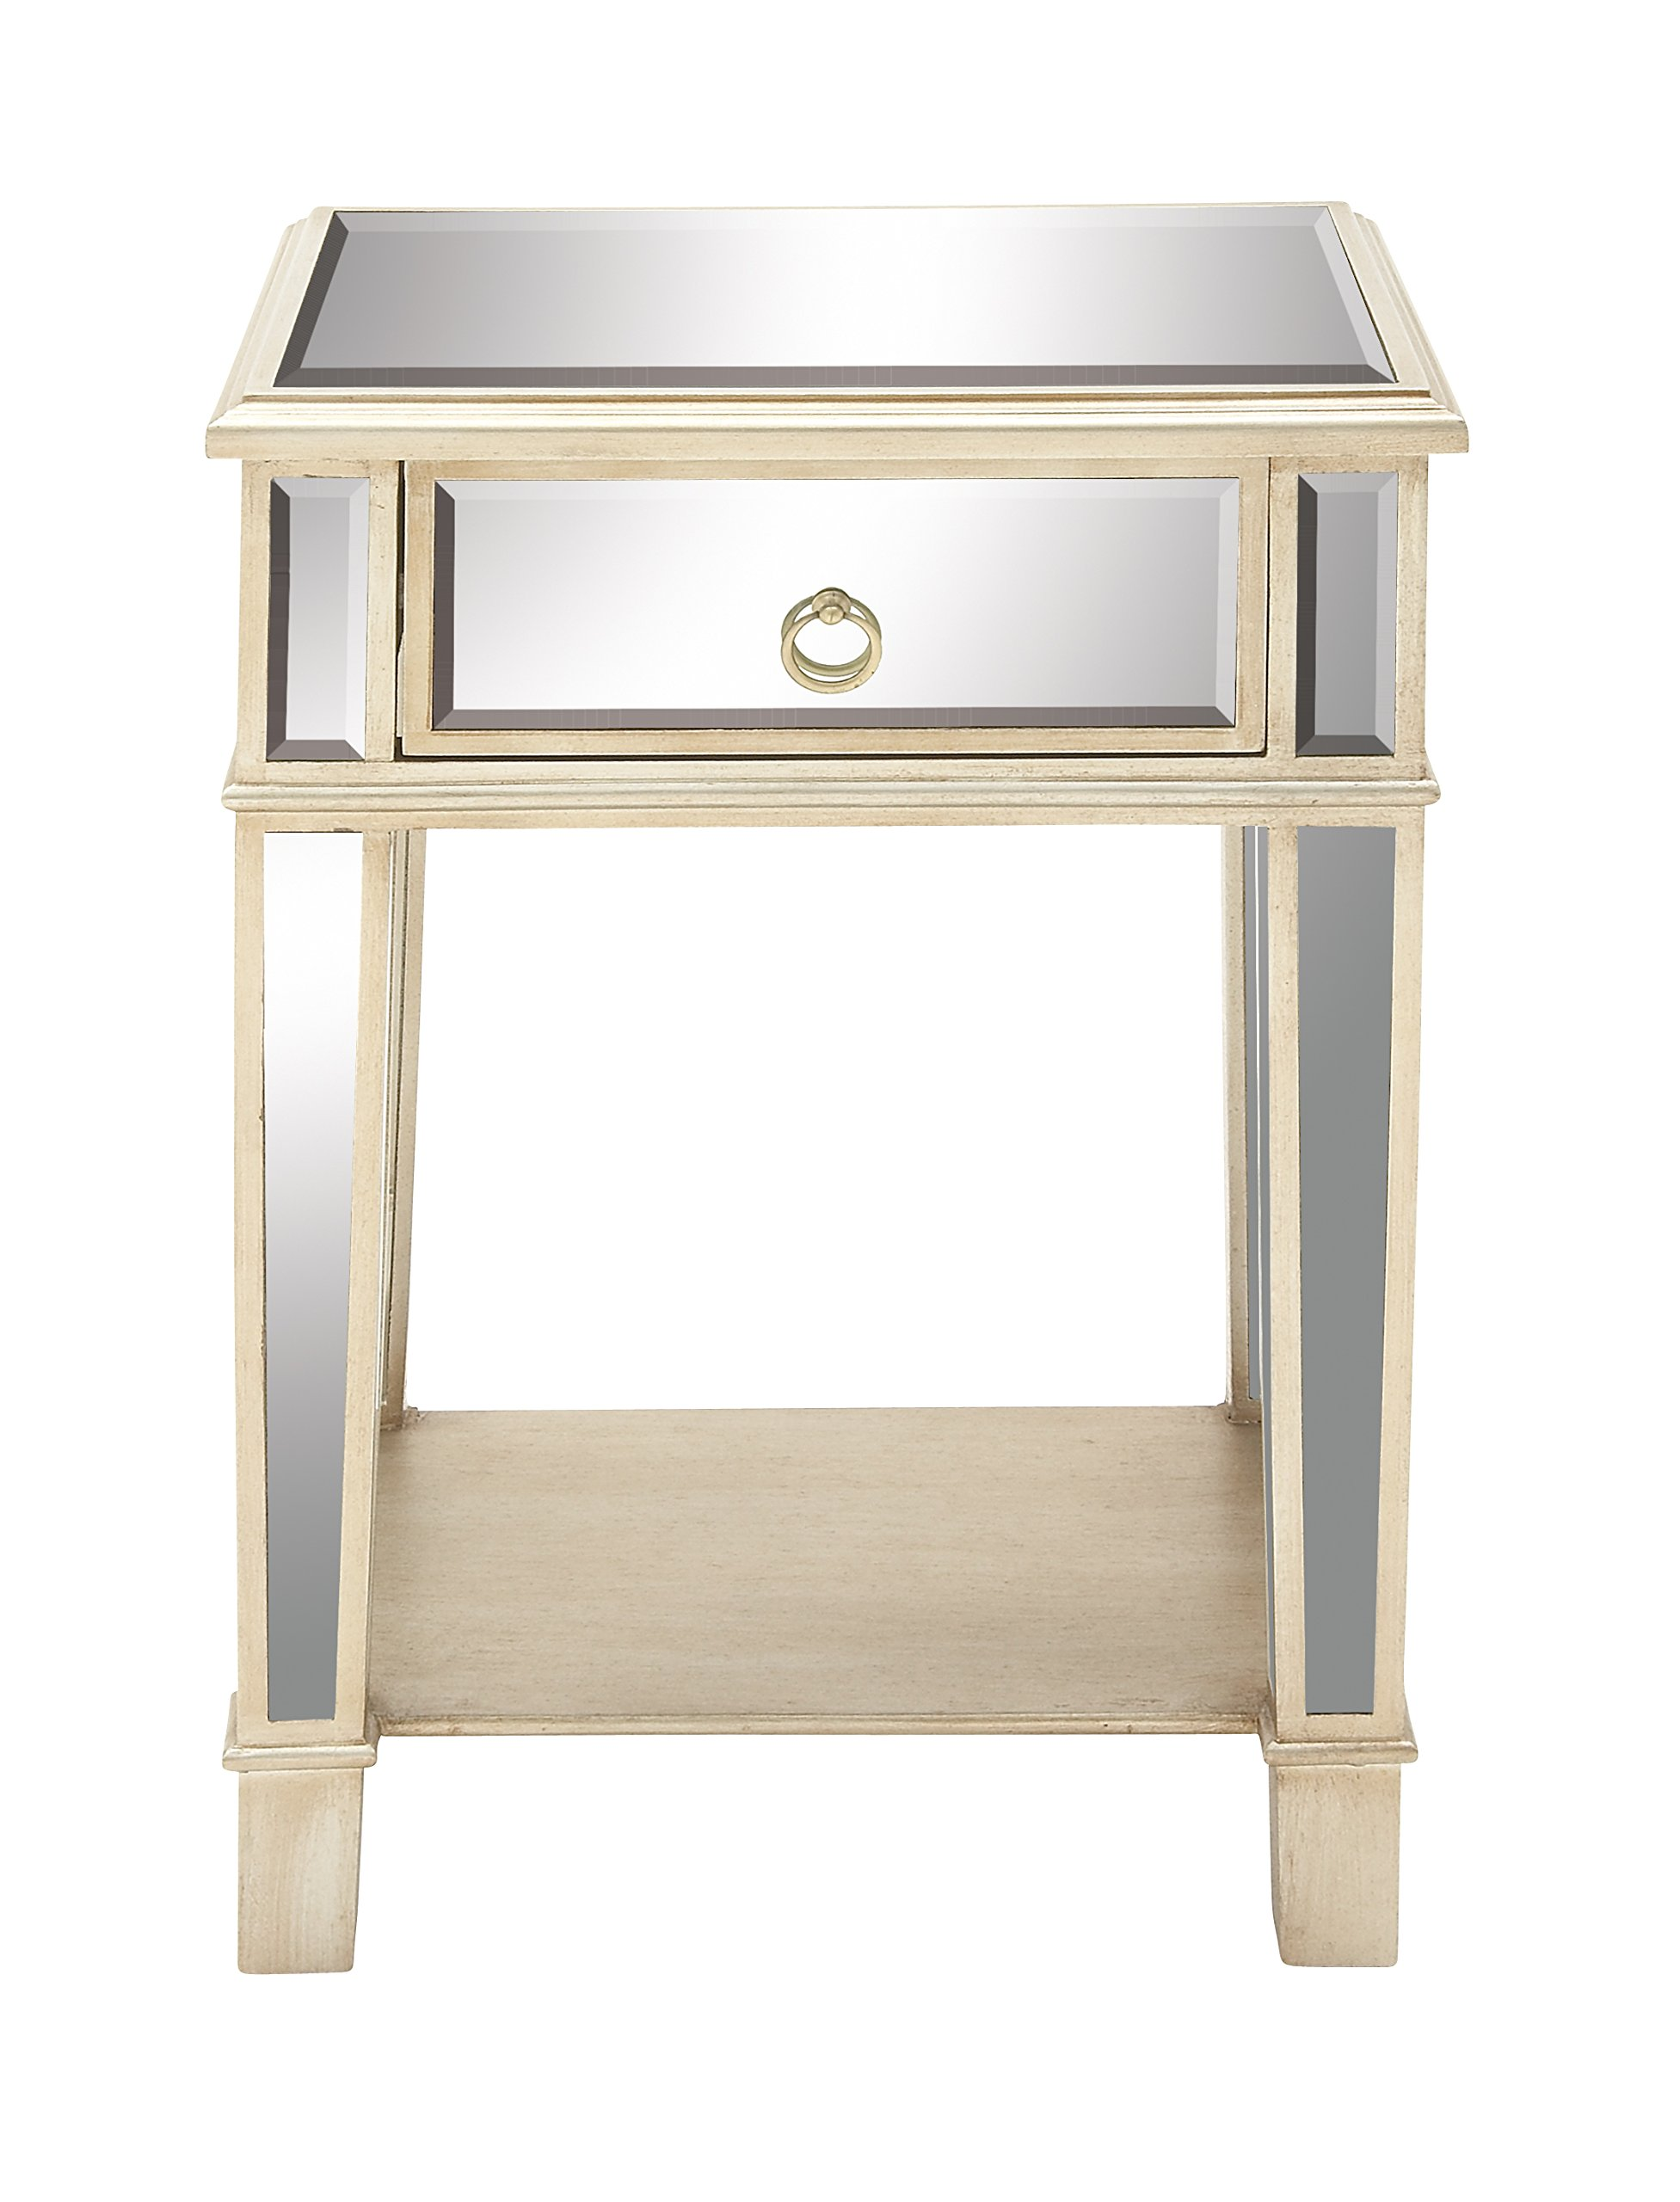 "Deco 79 56667 Wood Mir Side Table, 18"" x 27"" - Painted Wood and Beveled glass Fir and Medium density fiberboard and glass mirror Beige and reflective mirror - living-room-furniture, living-room, end-tables - 81VBBJtPVPL -"